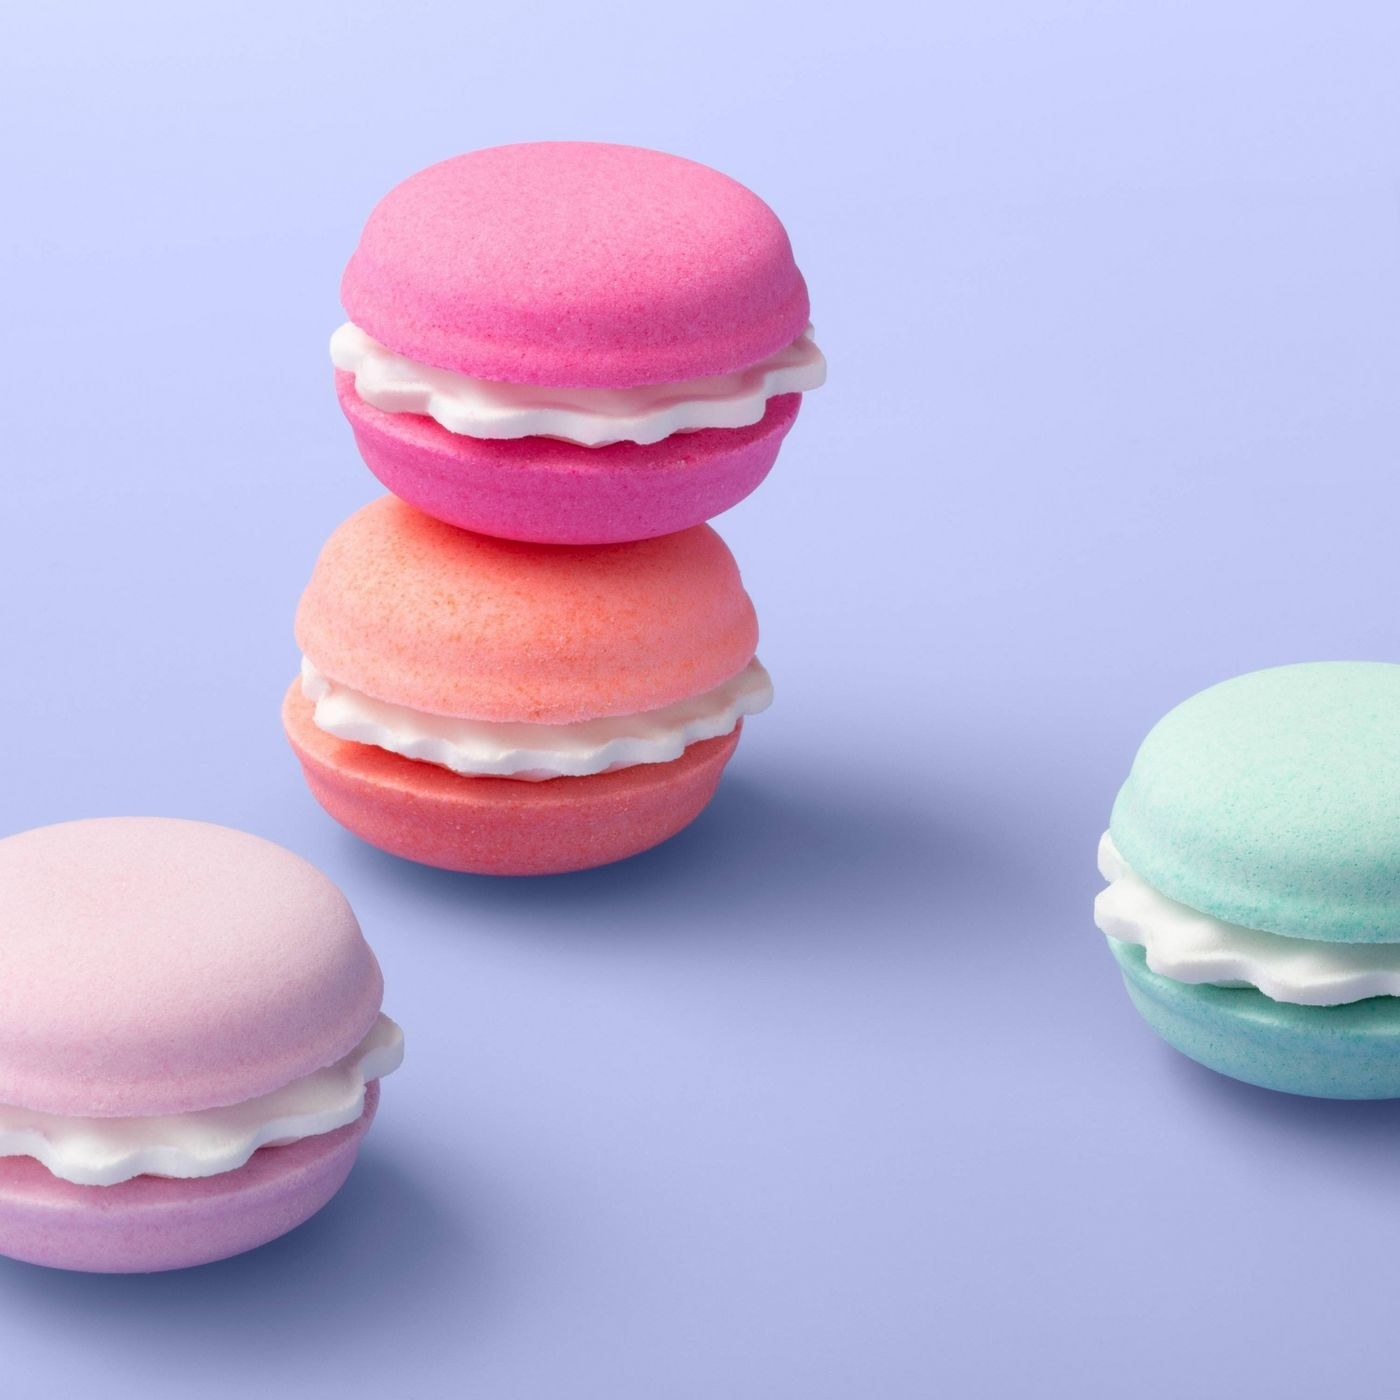 The bath bombs, which are shaped like small, pastel-colored macarons